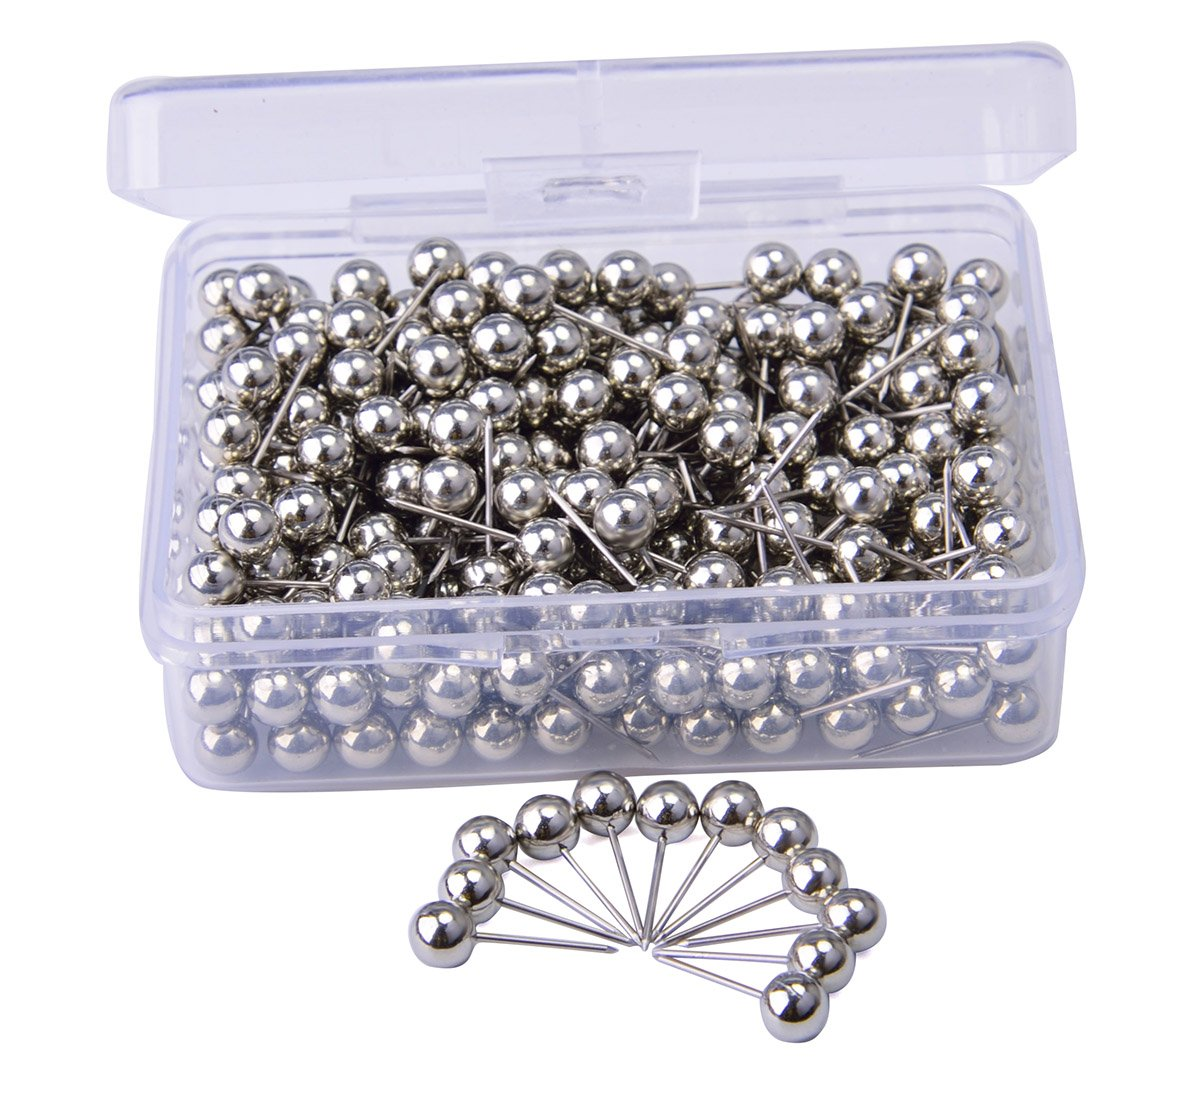 JoyFamily Map Tacks Push Pins, with 1/ 5 Inch Round Plastic Head and Steel Point, 300 PCS (Silver)